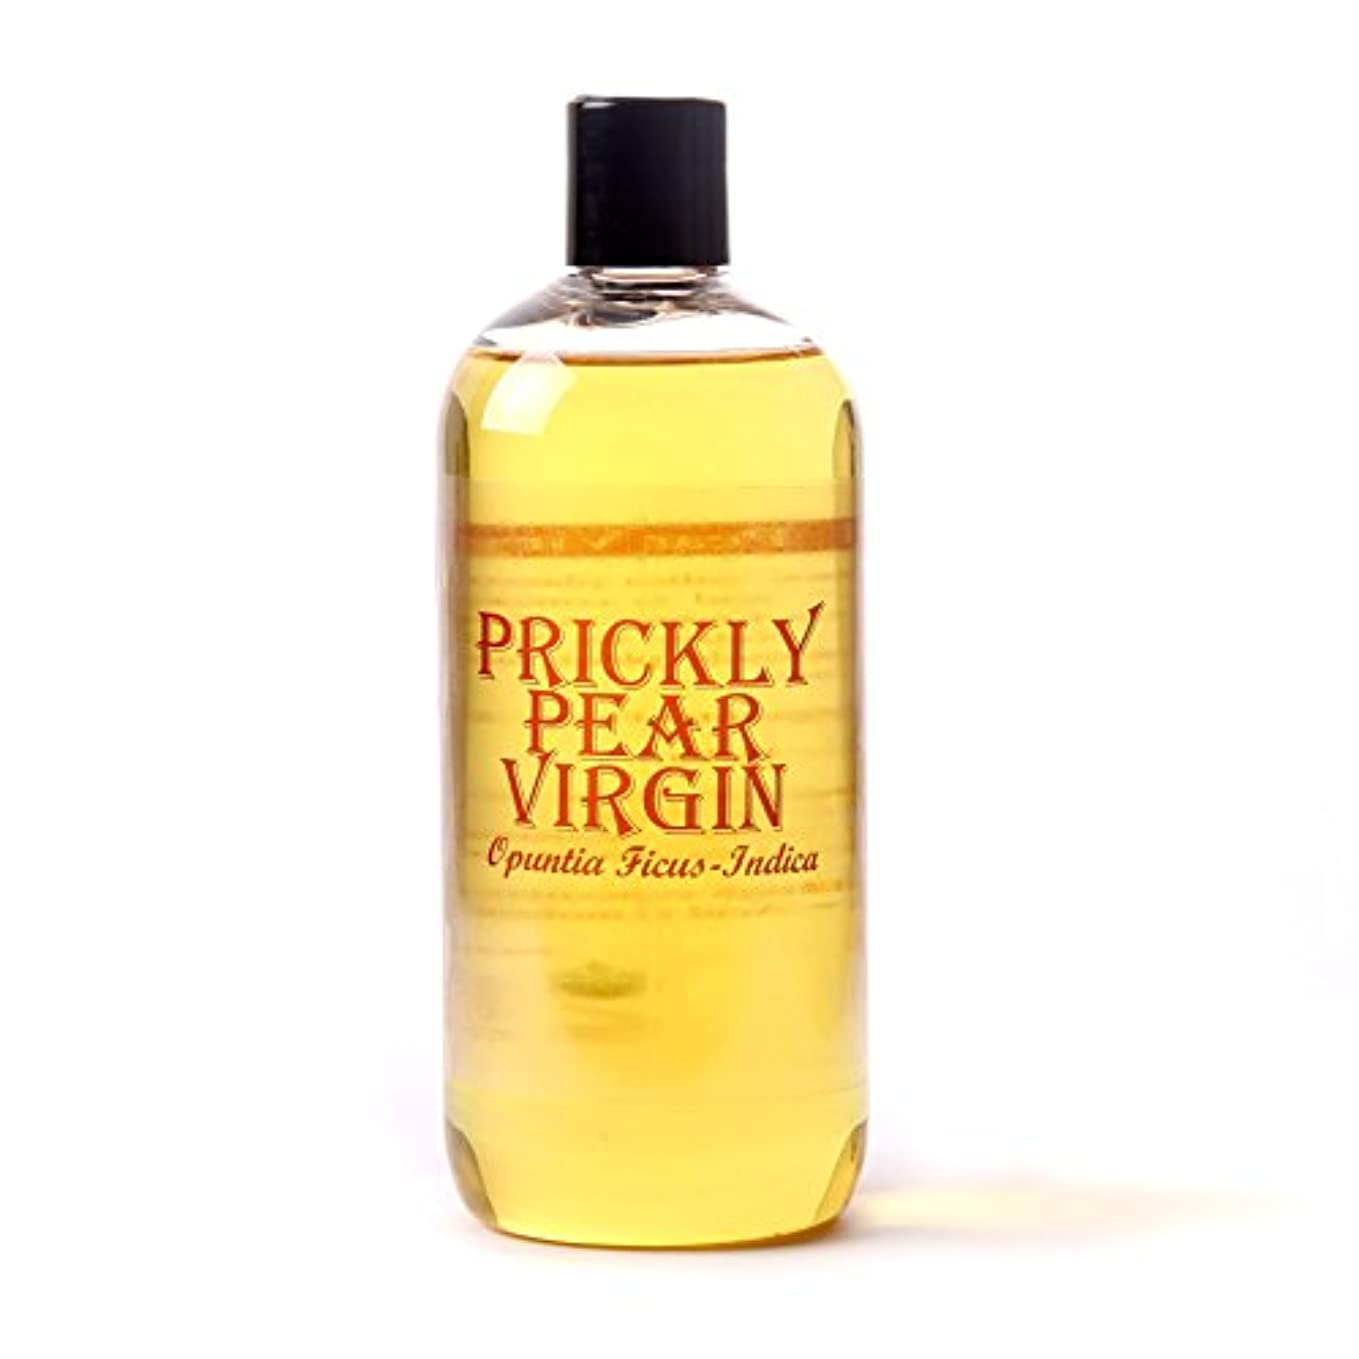 Prickly Pear Virgin Carrier Oil - 100% Pure - 500ml